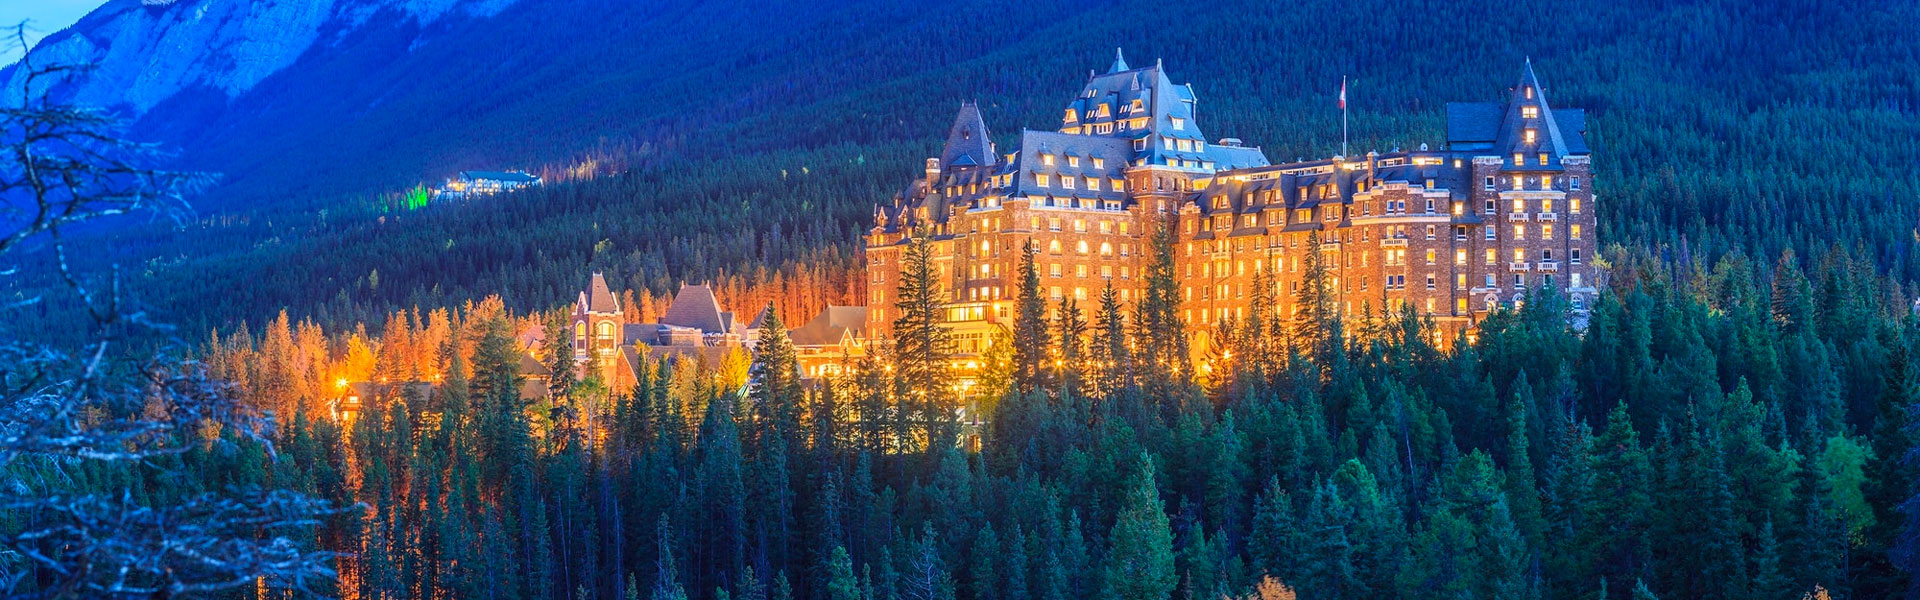 Exploring Fairmonts Grand Canadian Railway Hotels in the Rockies